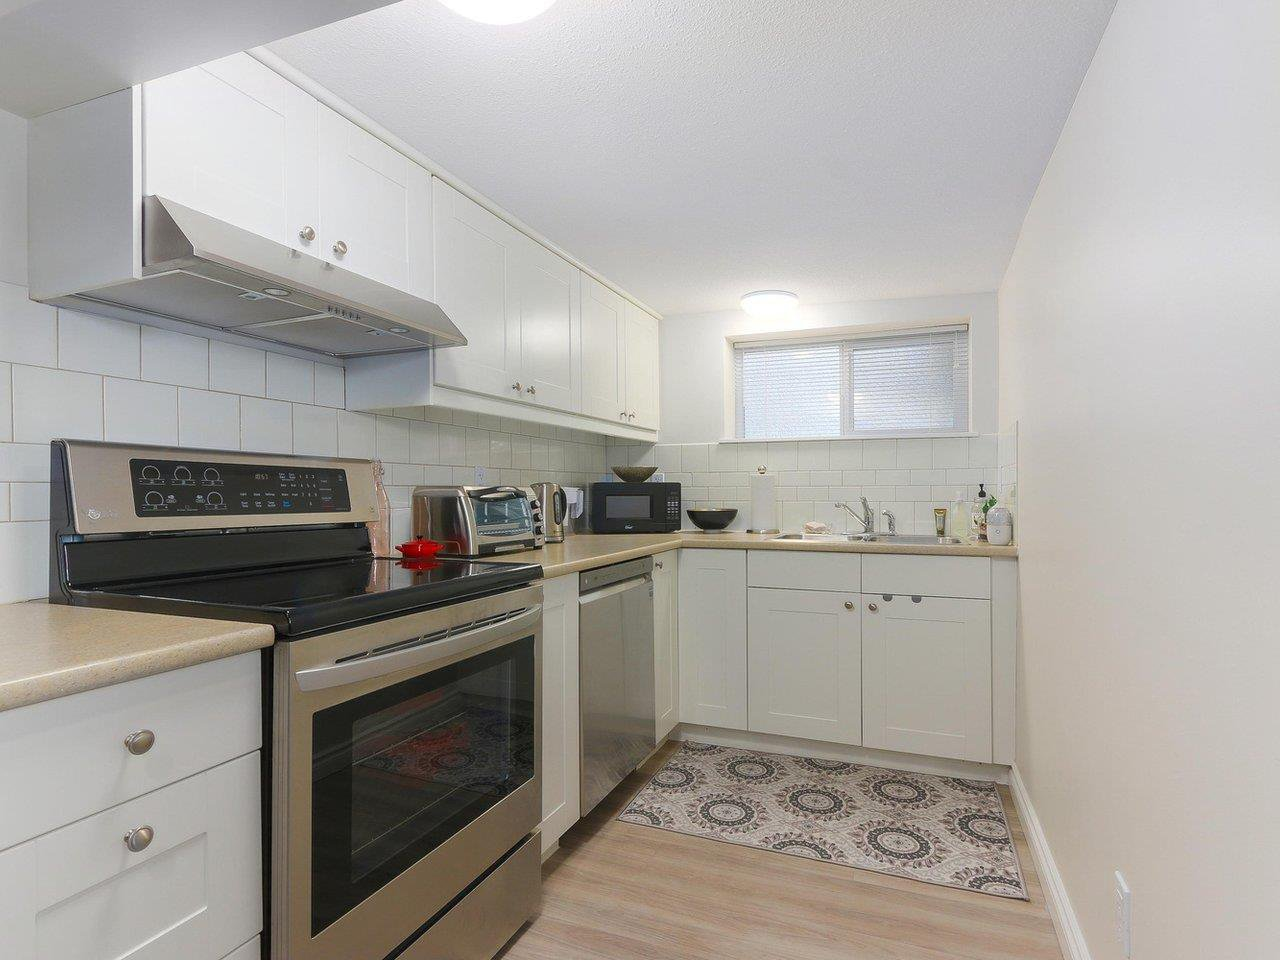 """Photo 17: Photos: 2610 W 10TH Avenue in Vancouver: Kitsilano House for sale in """"Kitsilano"""" (Vancouver West)  : MLS®# R2471992"""